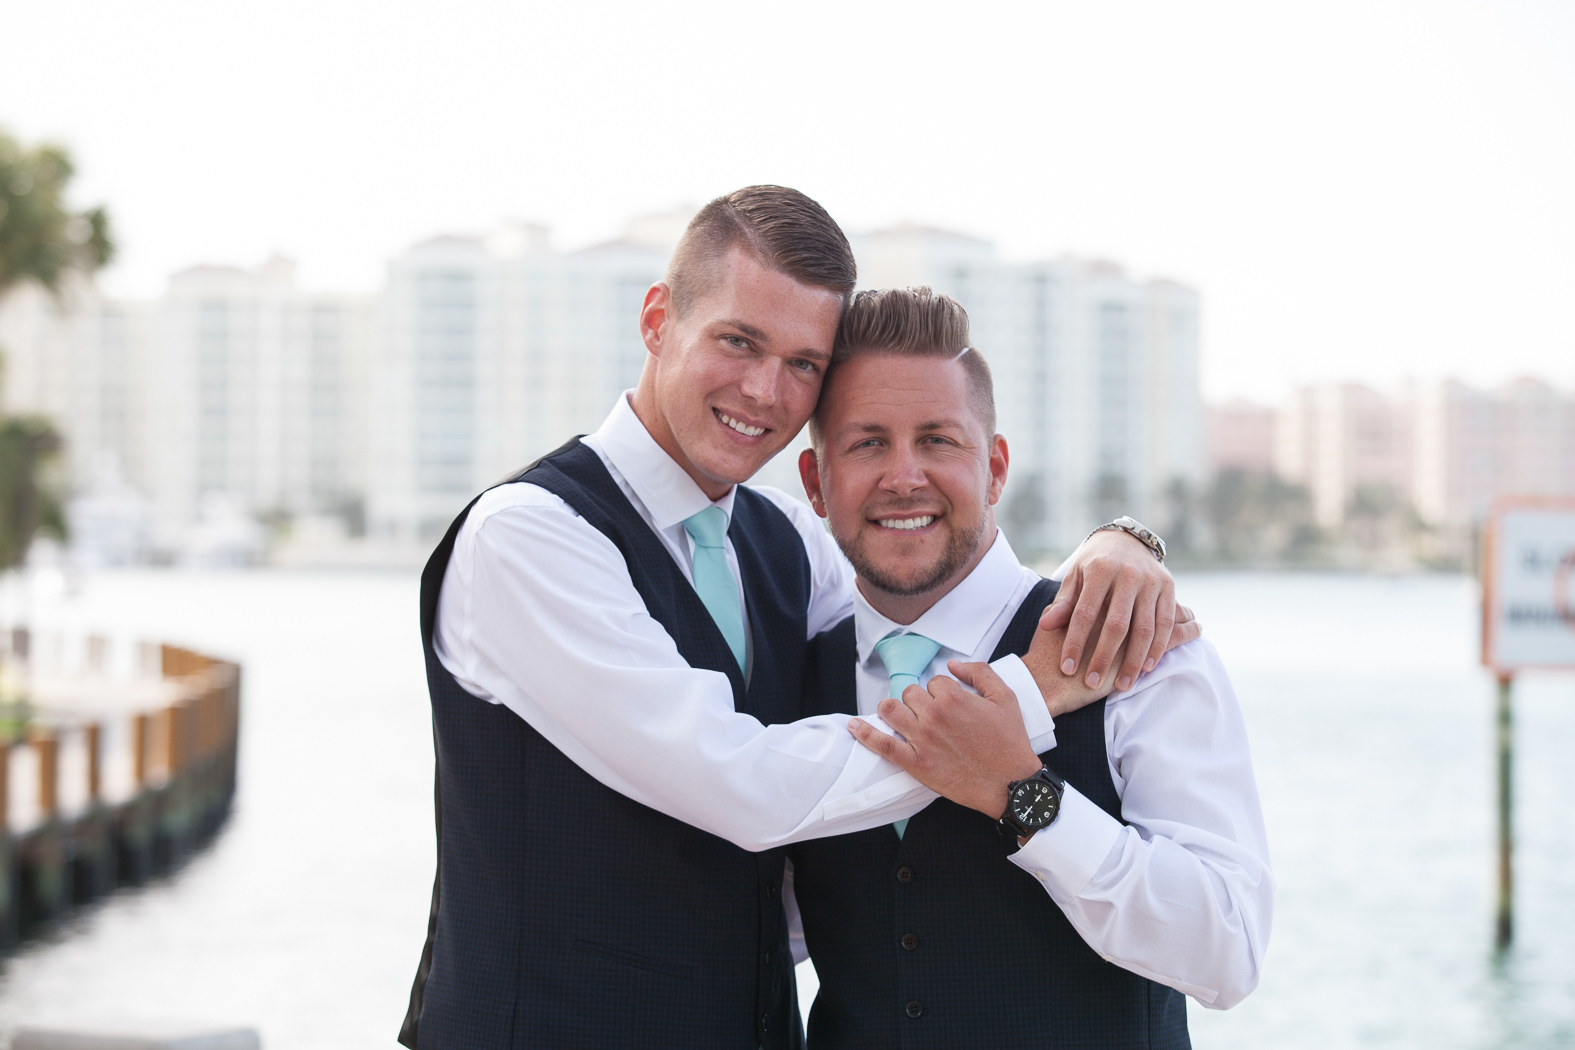 Groomsmen of wedding posing for a photo with intracoastal background